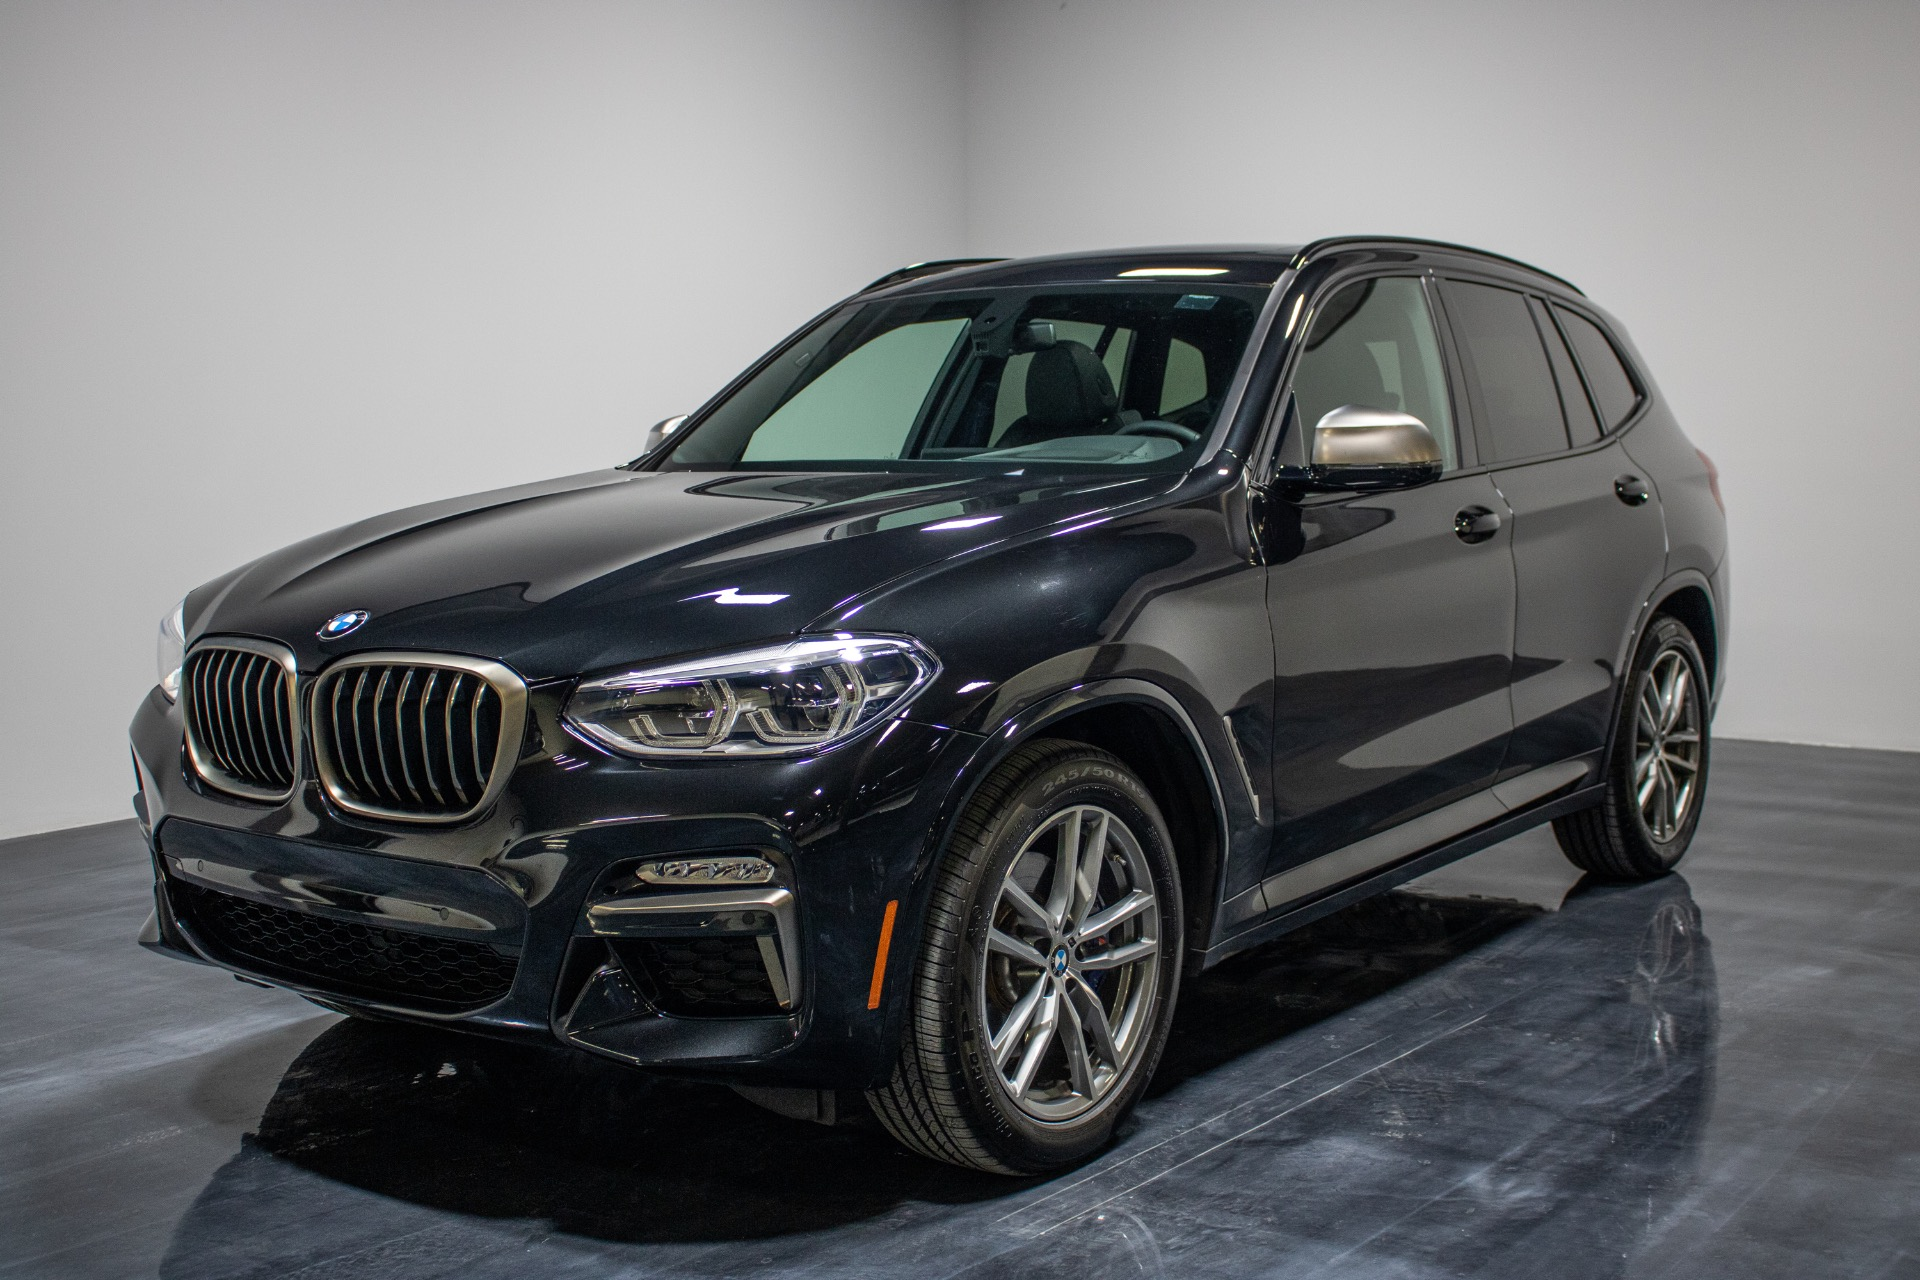 Used 2018 BMW X3 M40i Sport Utility 4D for sale Sold at Perfect Auto Collection in Akron OH 44310 1